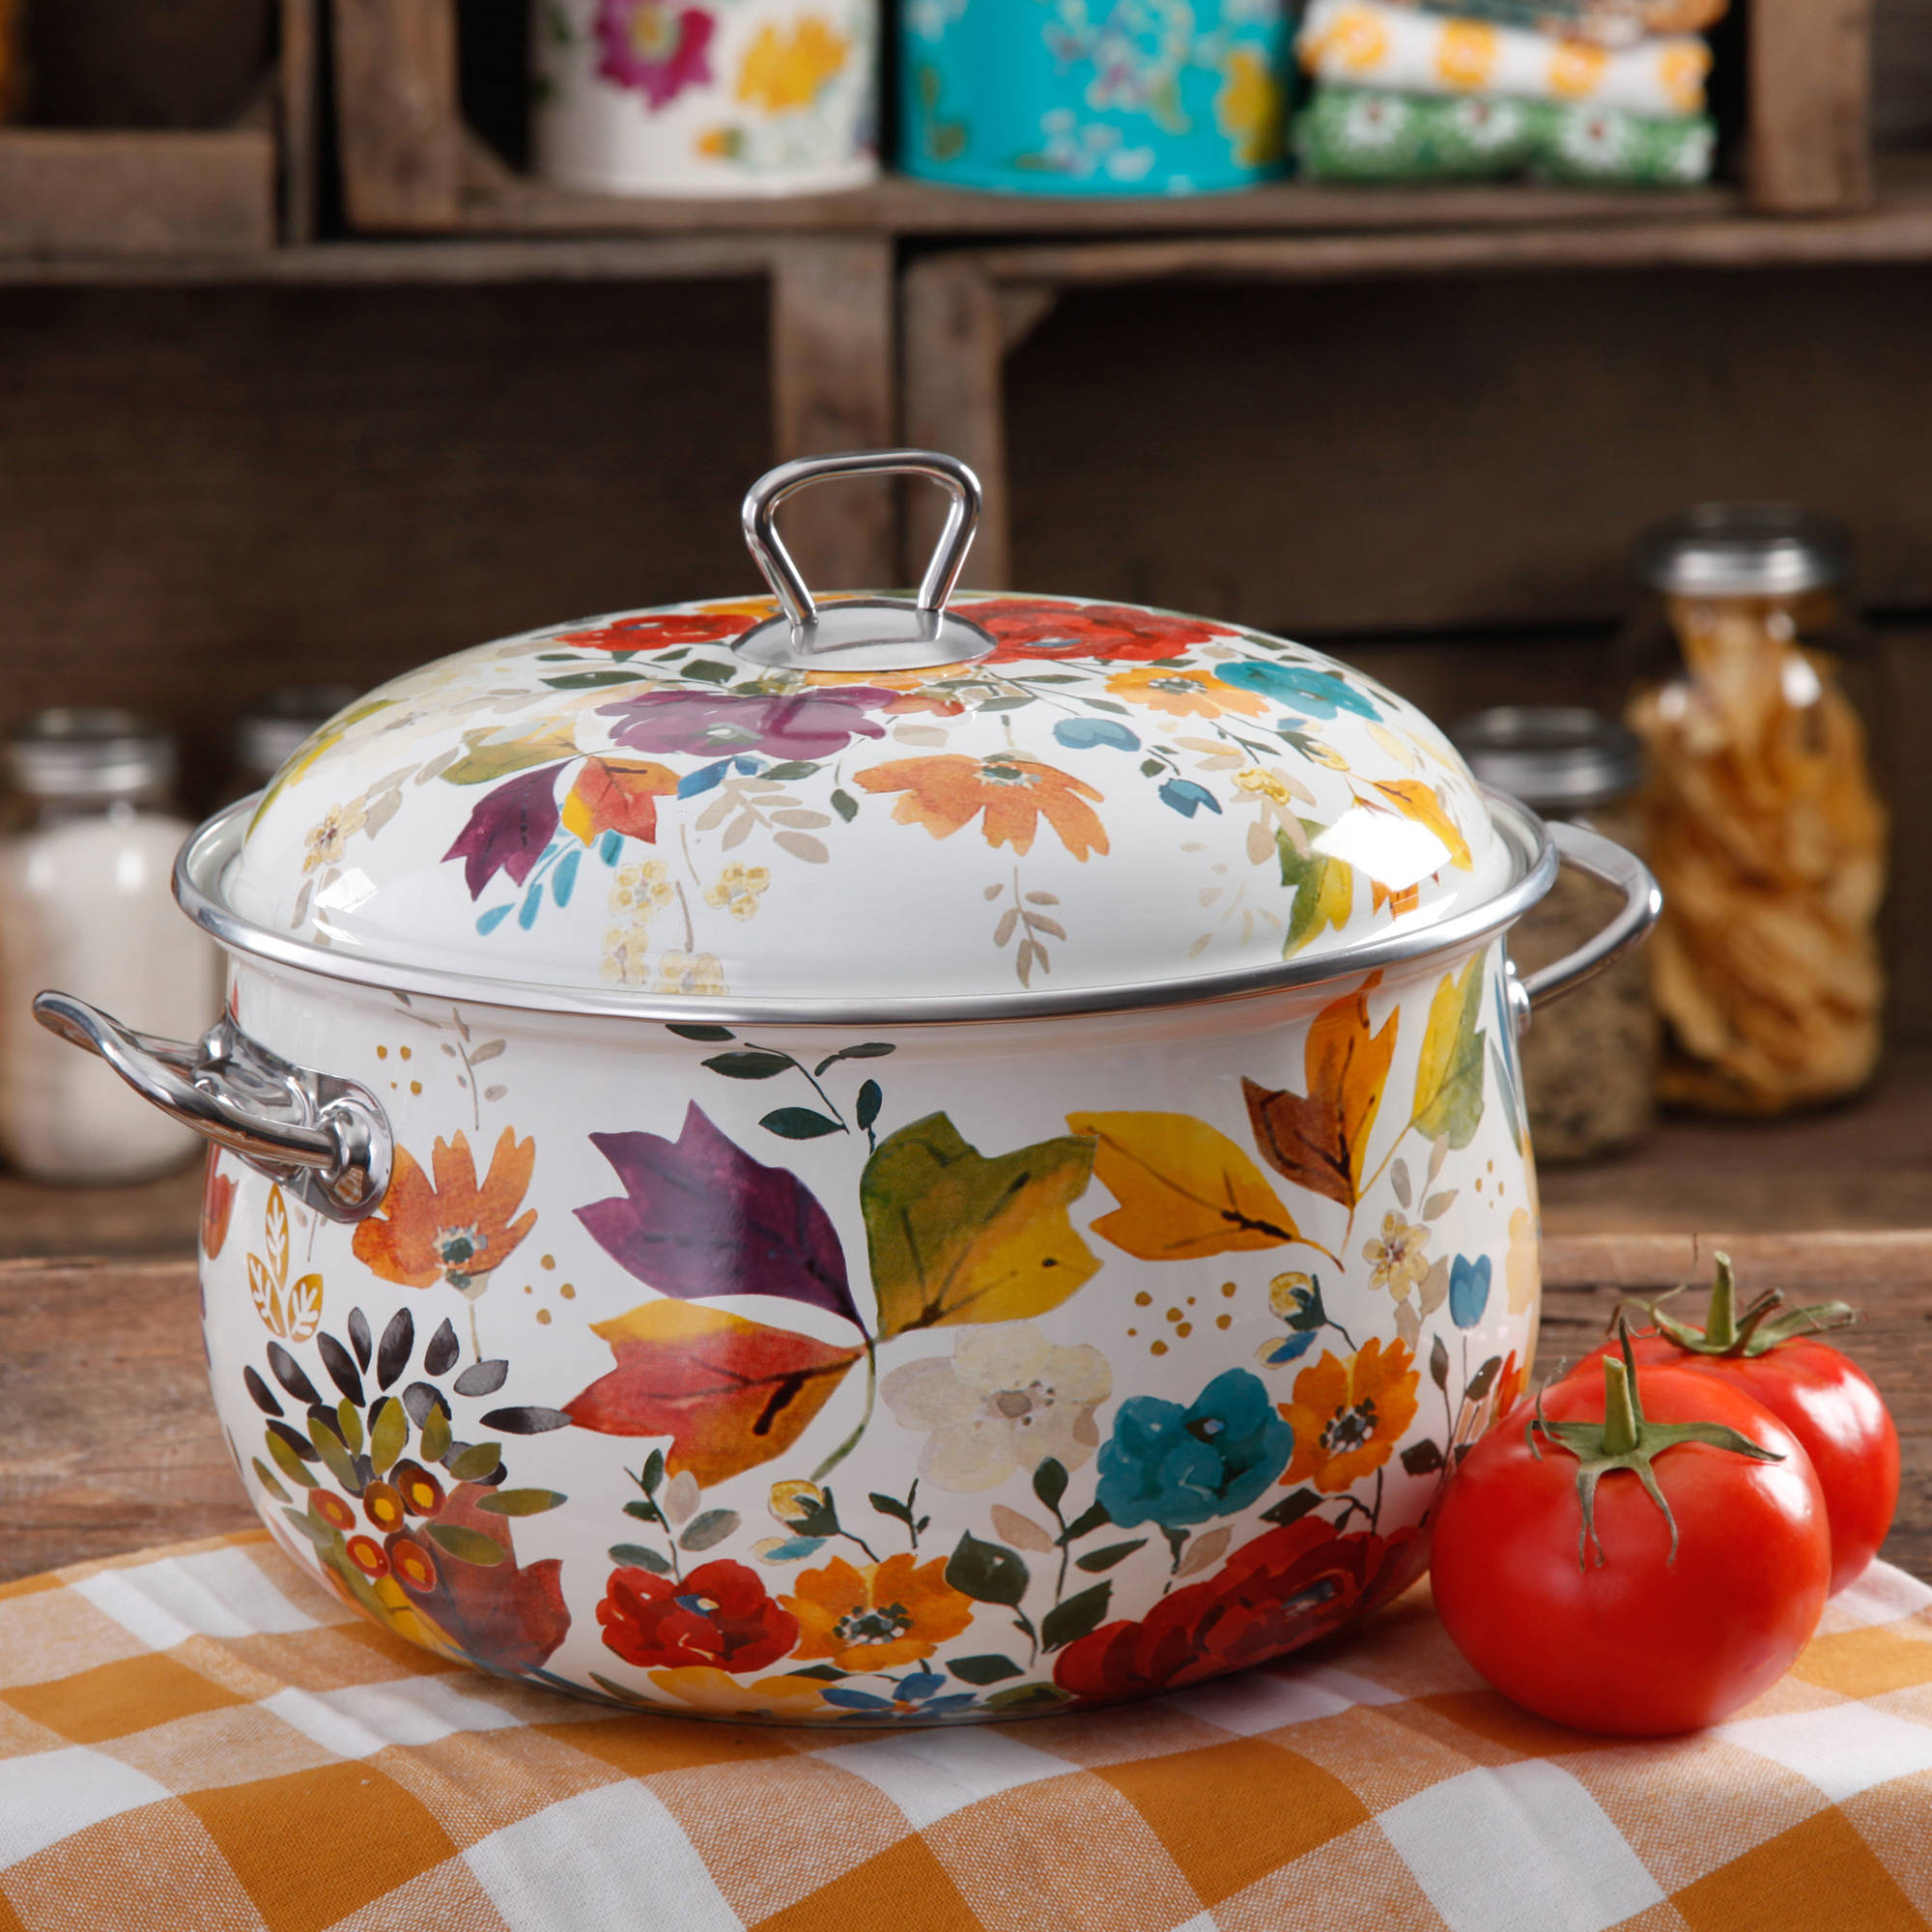 The Pioneer Woman Timeless Floral 4 Quart Casserole with Lid